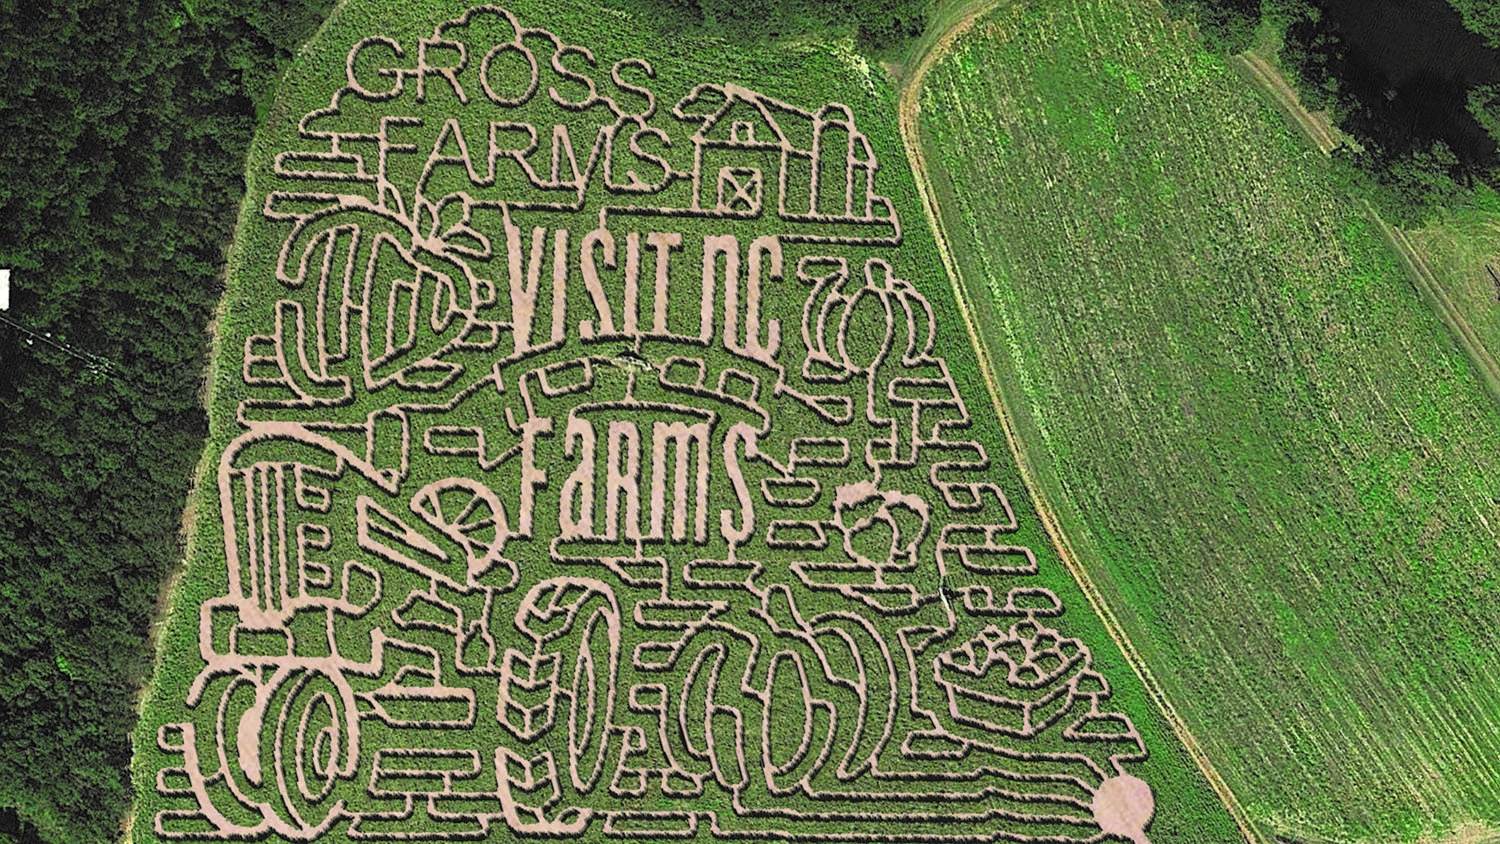 """Photo of corn maze that says """"Gross Farms"""" and """"Visit NC Farms"""""""